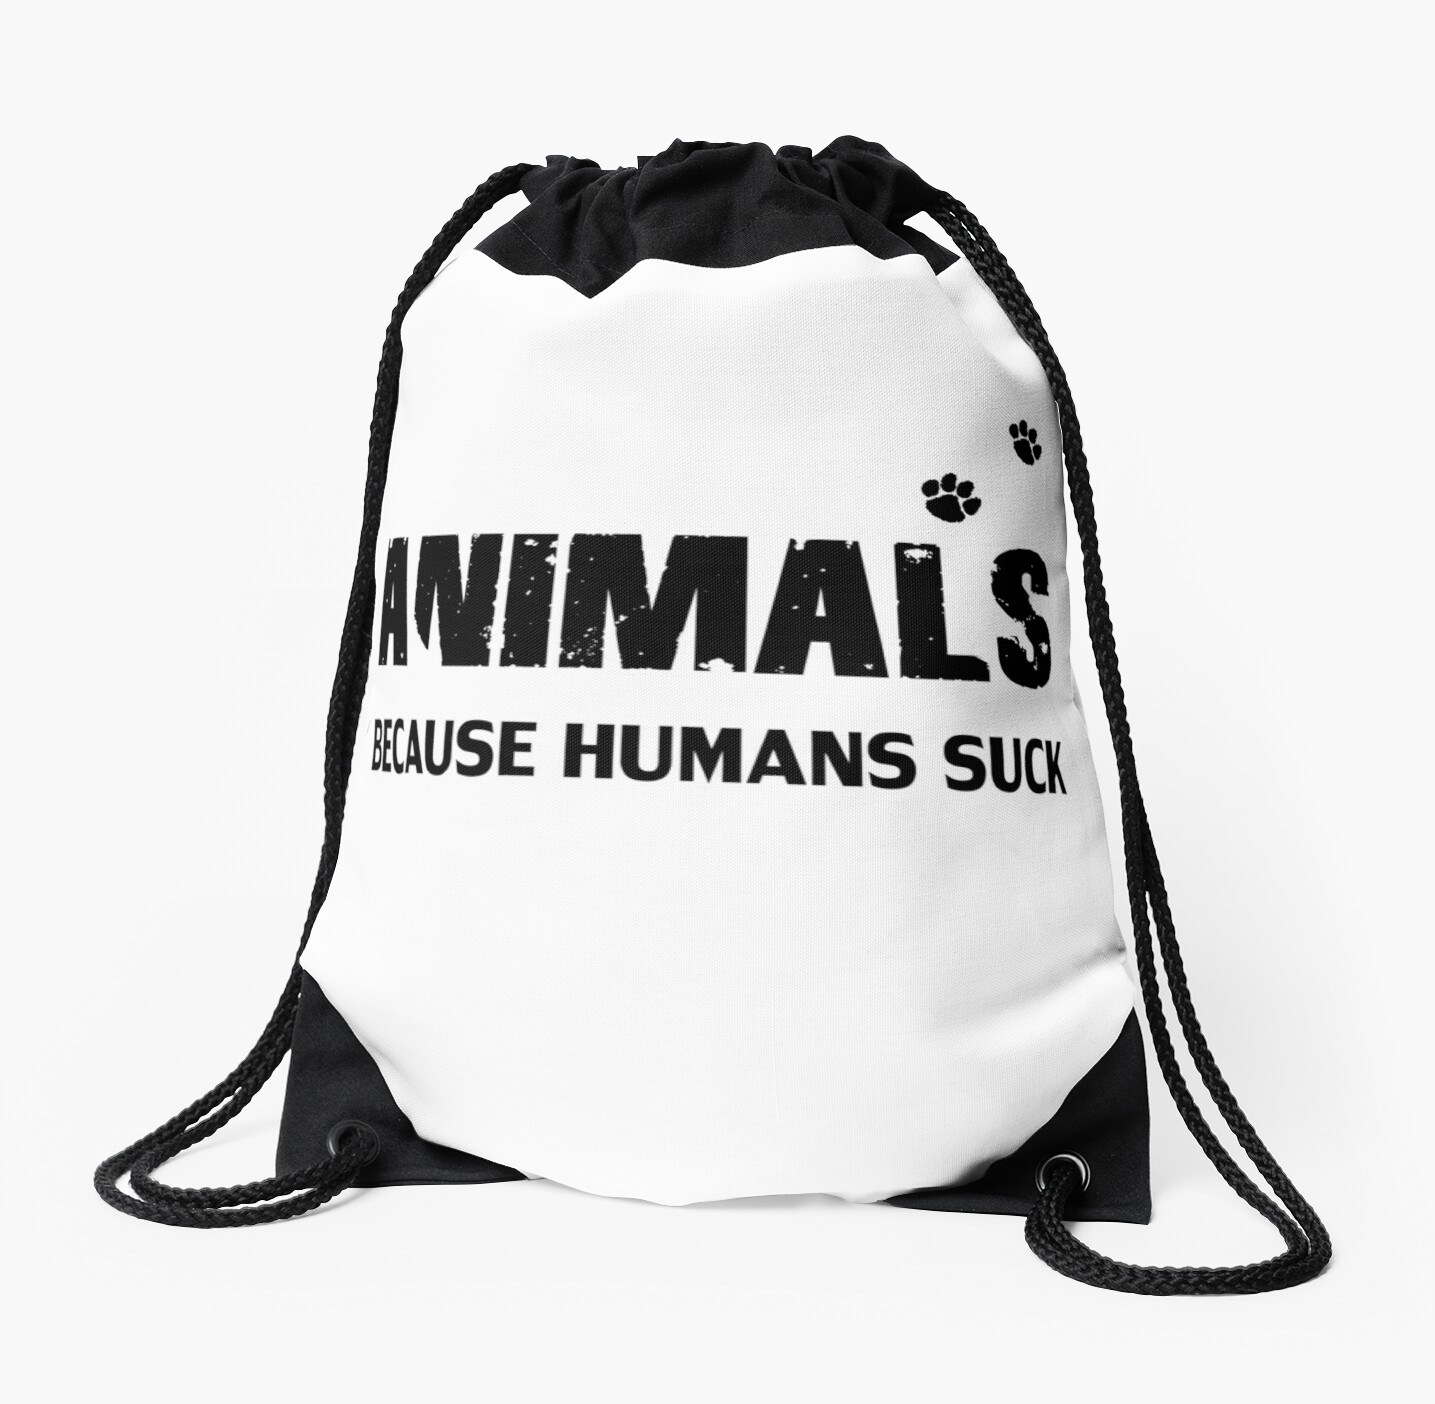 Animals - Because Humans Suck by OwlBeDesigning